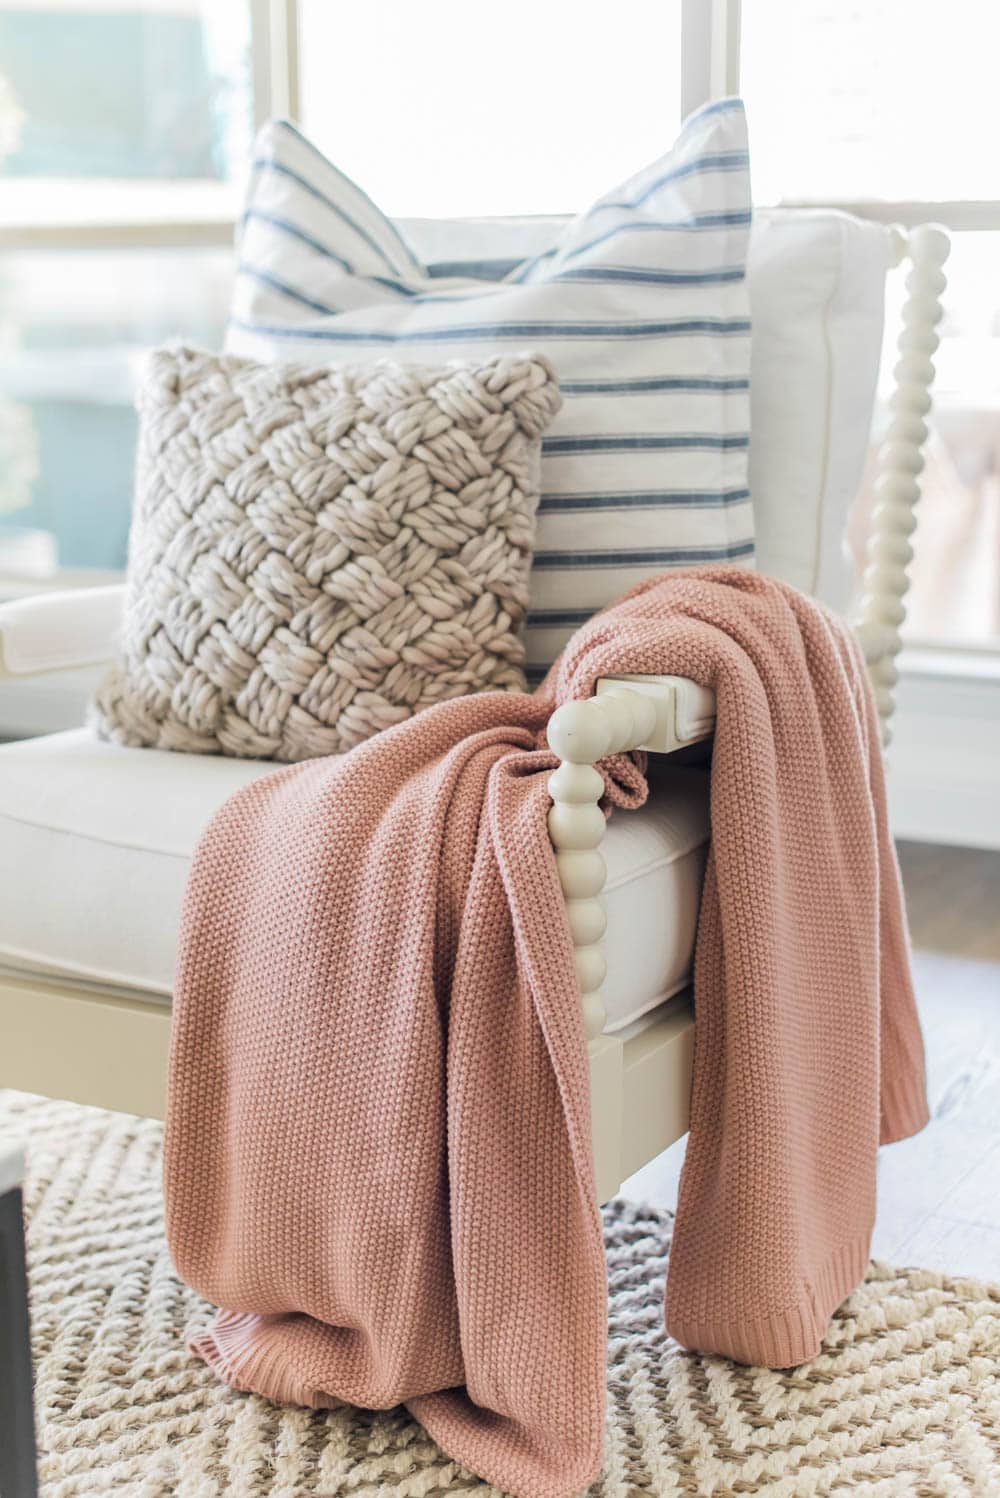 Add beautiful lightweight throw blankets to your living room for effortless spring decorating ideas. #ABlissfulNest #springideas #springdecorating